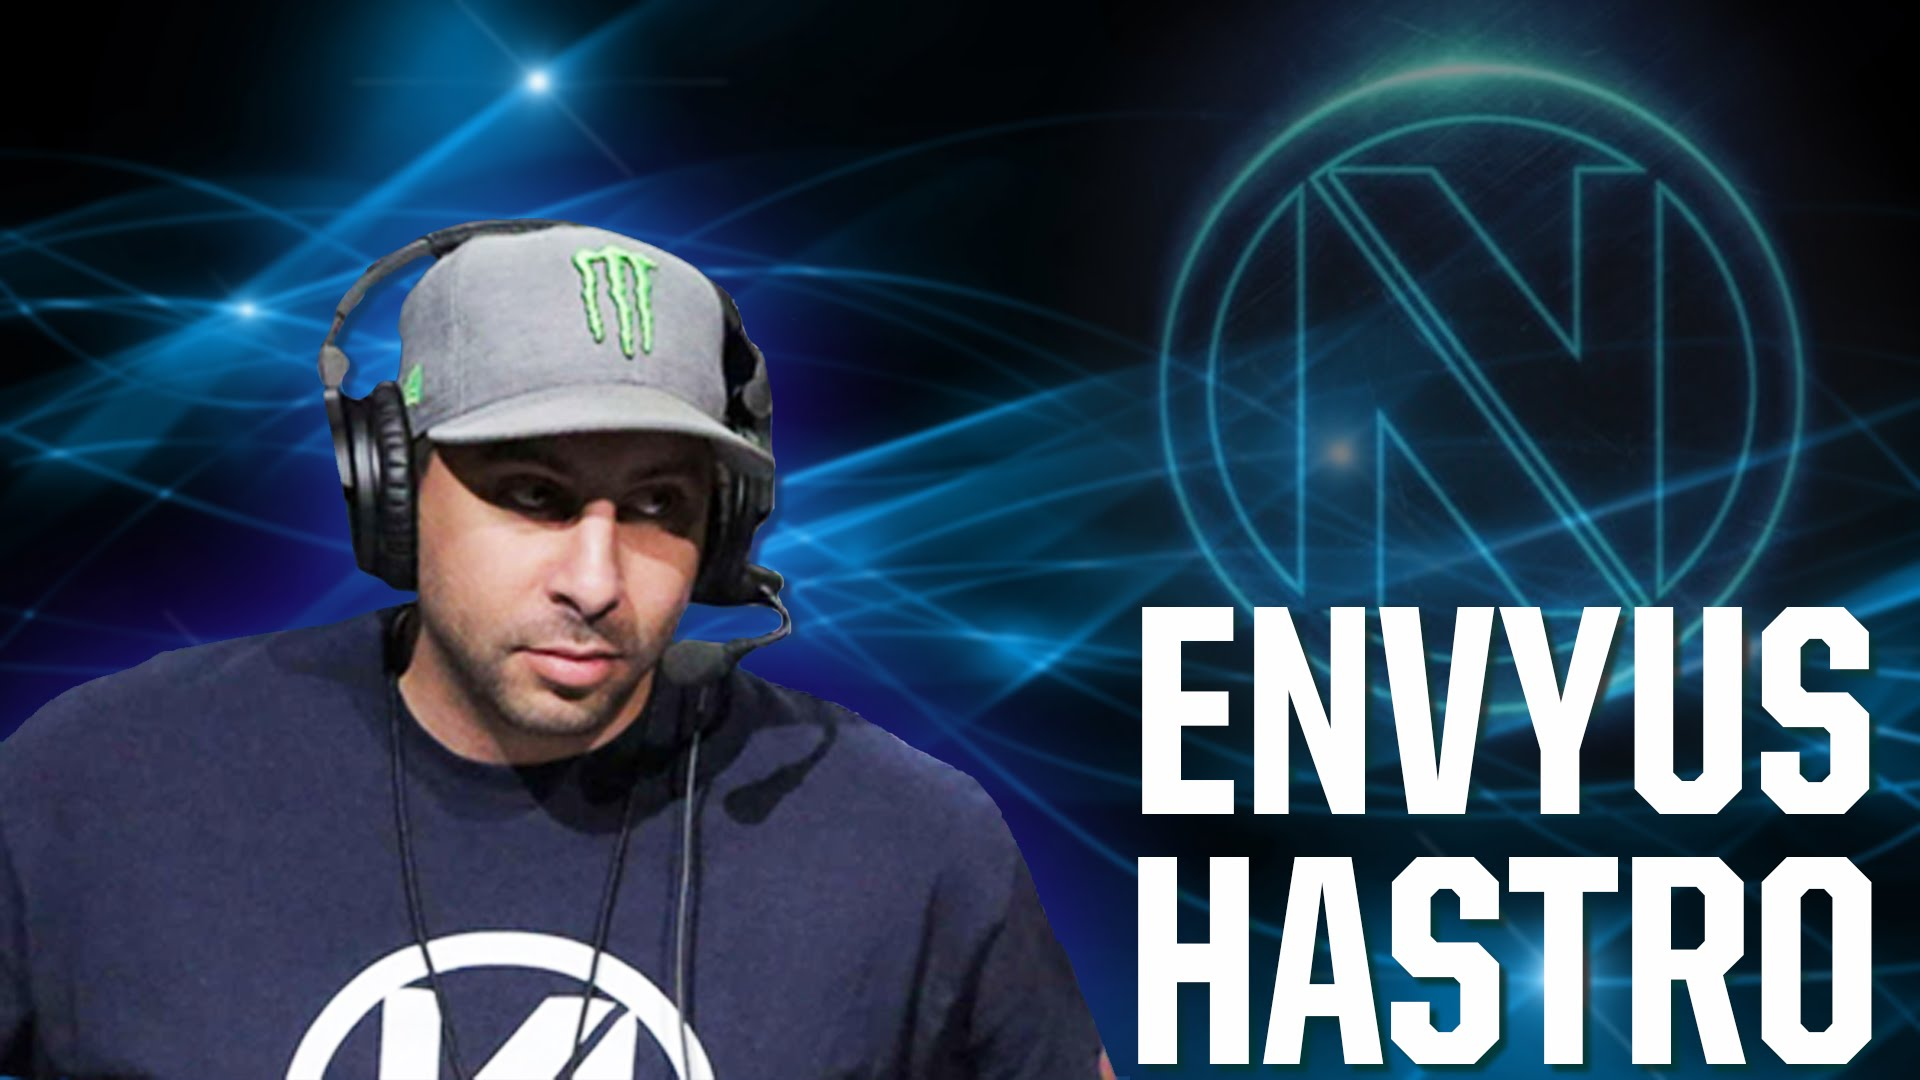 EnVyUs Hastro proposes Medals for tournament winners